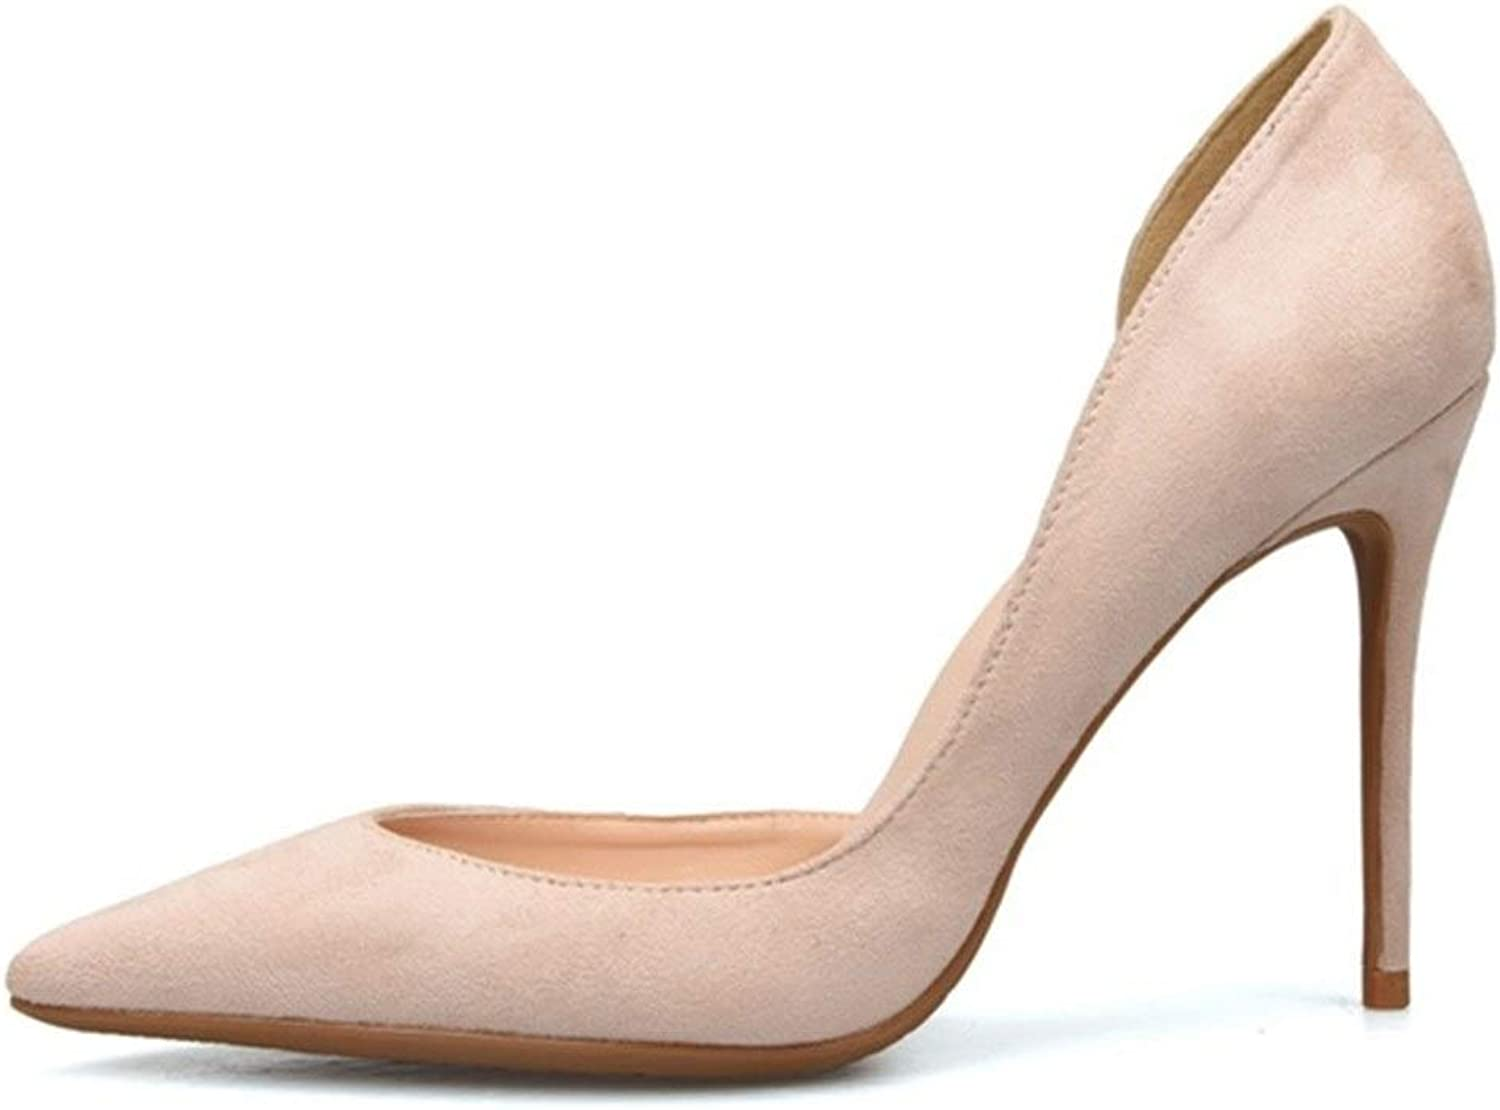 ZerenQ D'Orsay Pumps for Women High Stiletto Heels Side Cut Sexy Pointed Toe Dress Sandals for Ladies Party Wedding shoes Slip On Suede Pumps Durable (color   Nude 10 cm Heel, Size   6.5 M US)